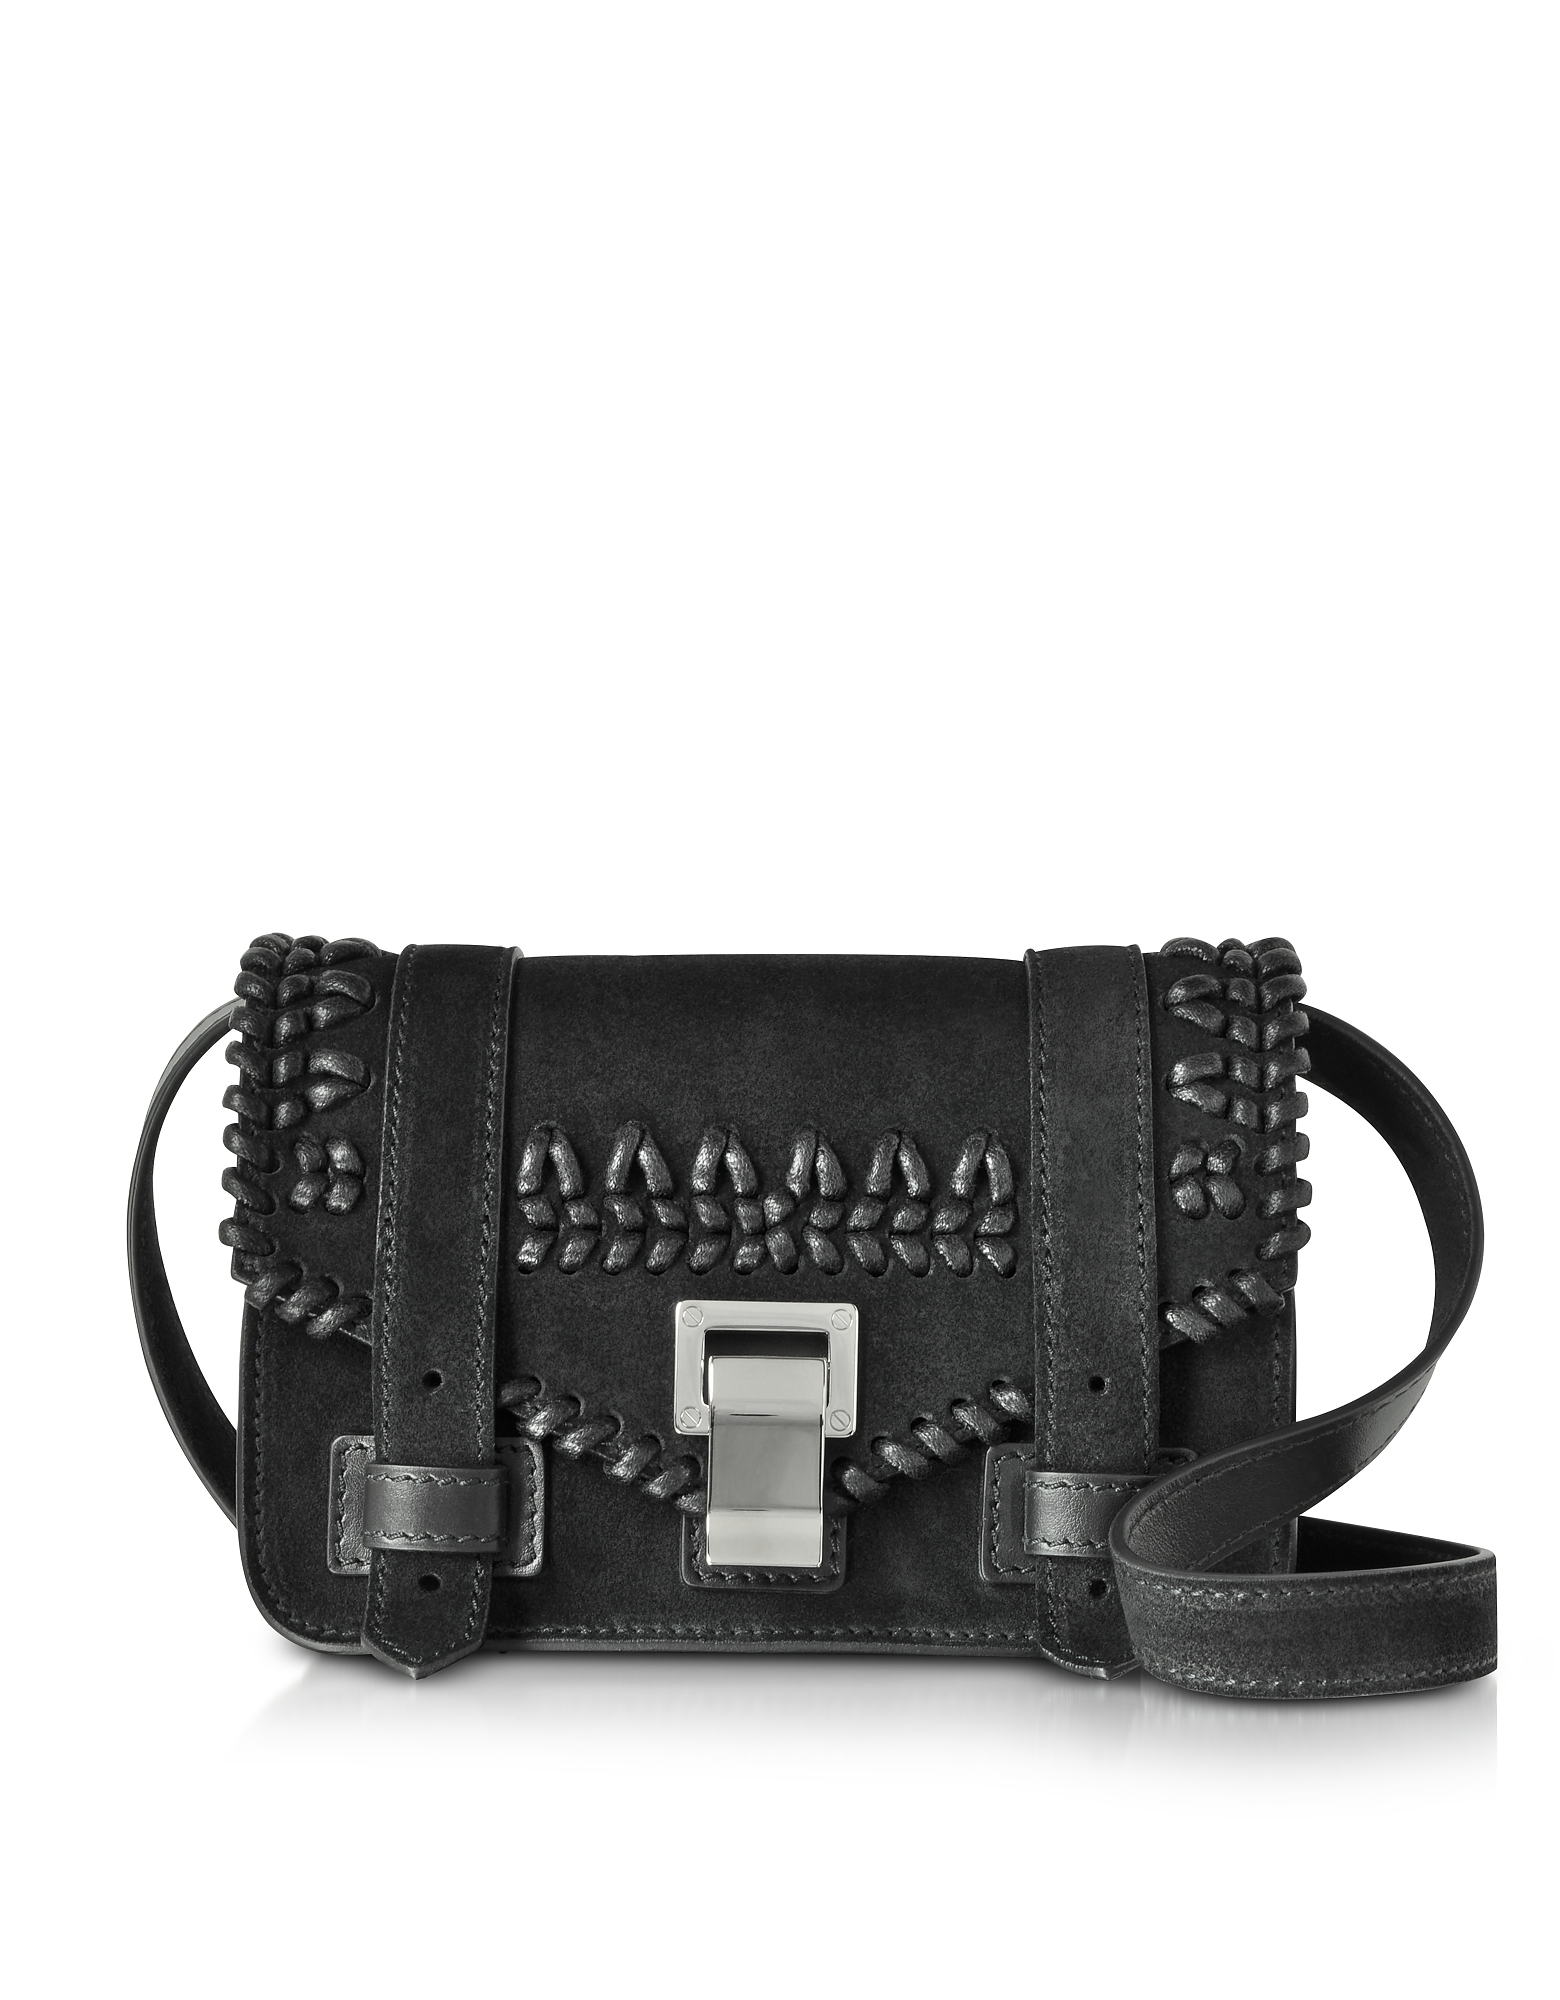 PS1+ Black Suede Mini Crossbody Bag w/Crochet